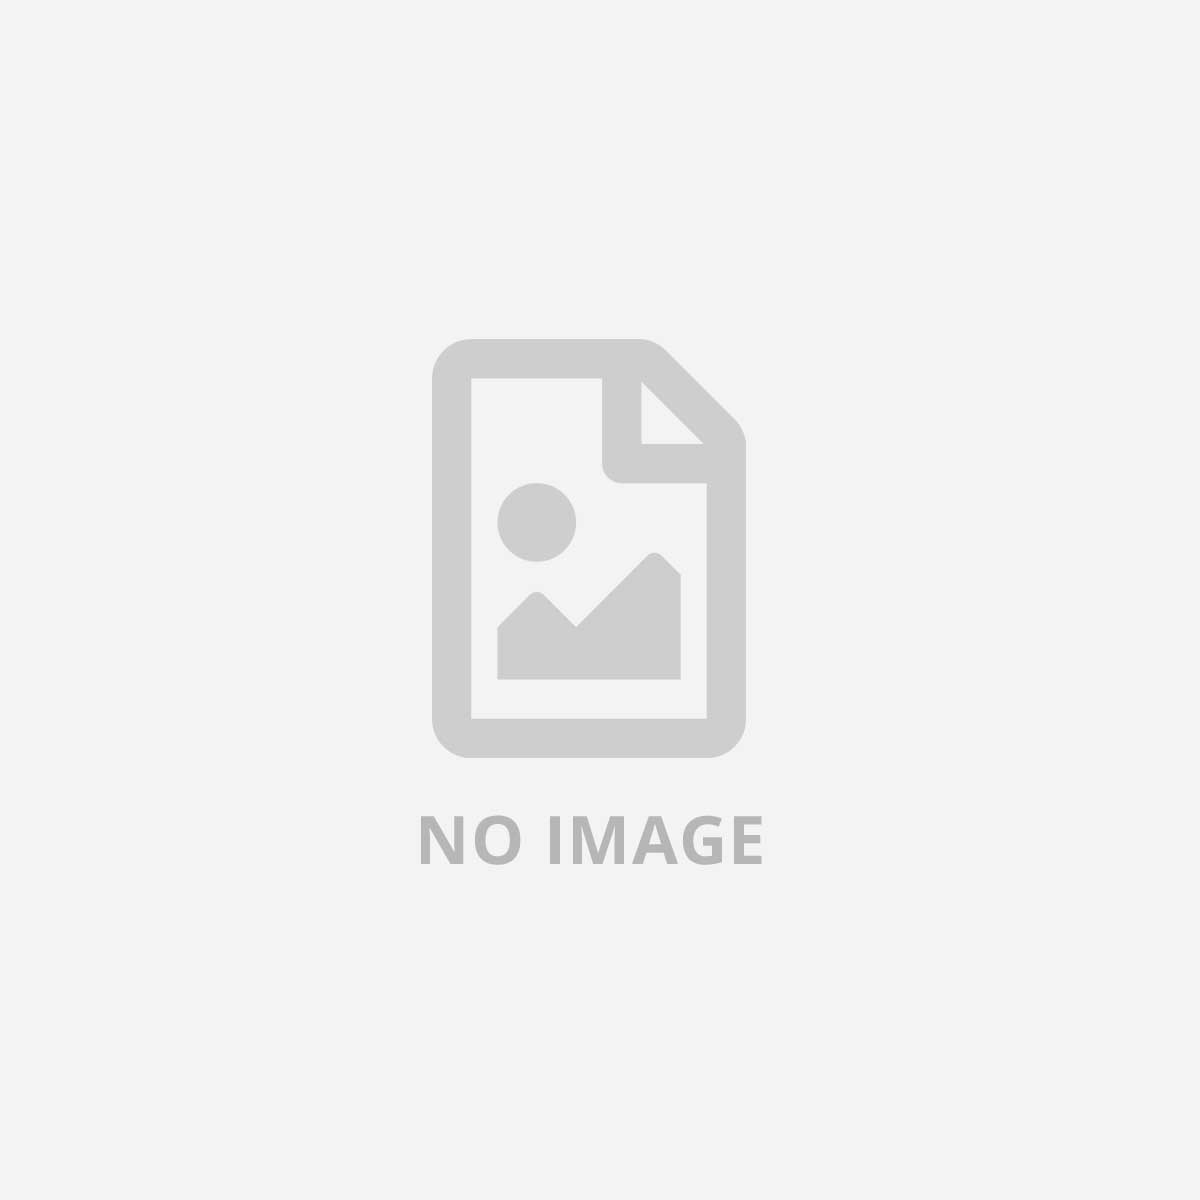 KOCH MEDIA RETRO-BIT SEGA MD 6BUTTON PAD BLACK